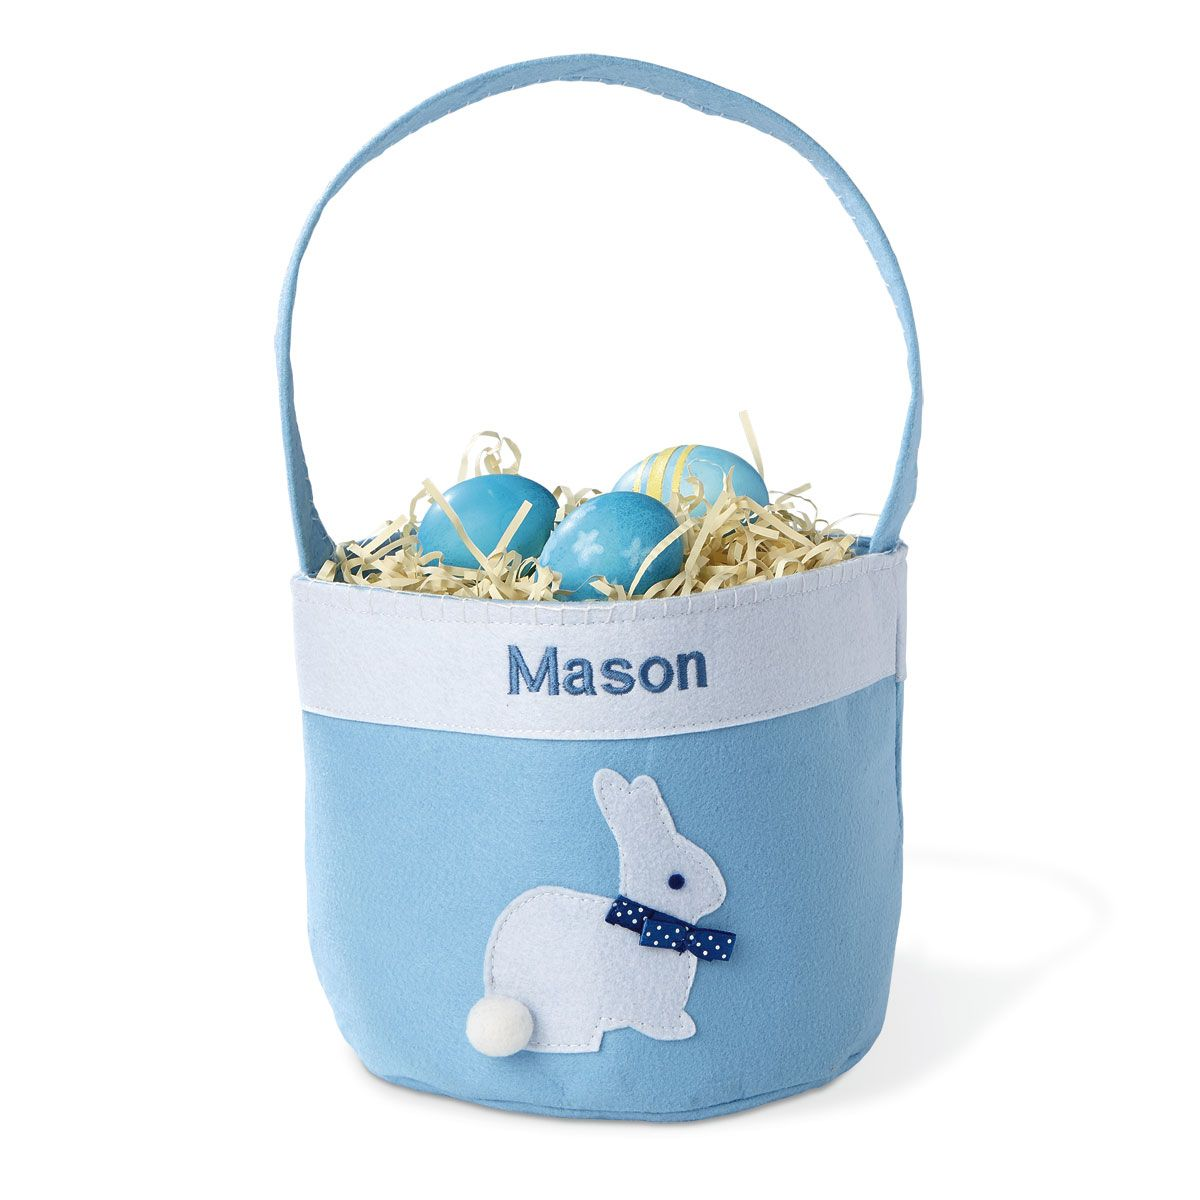 Personalized Applique Bunny Easter Baskets